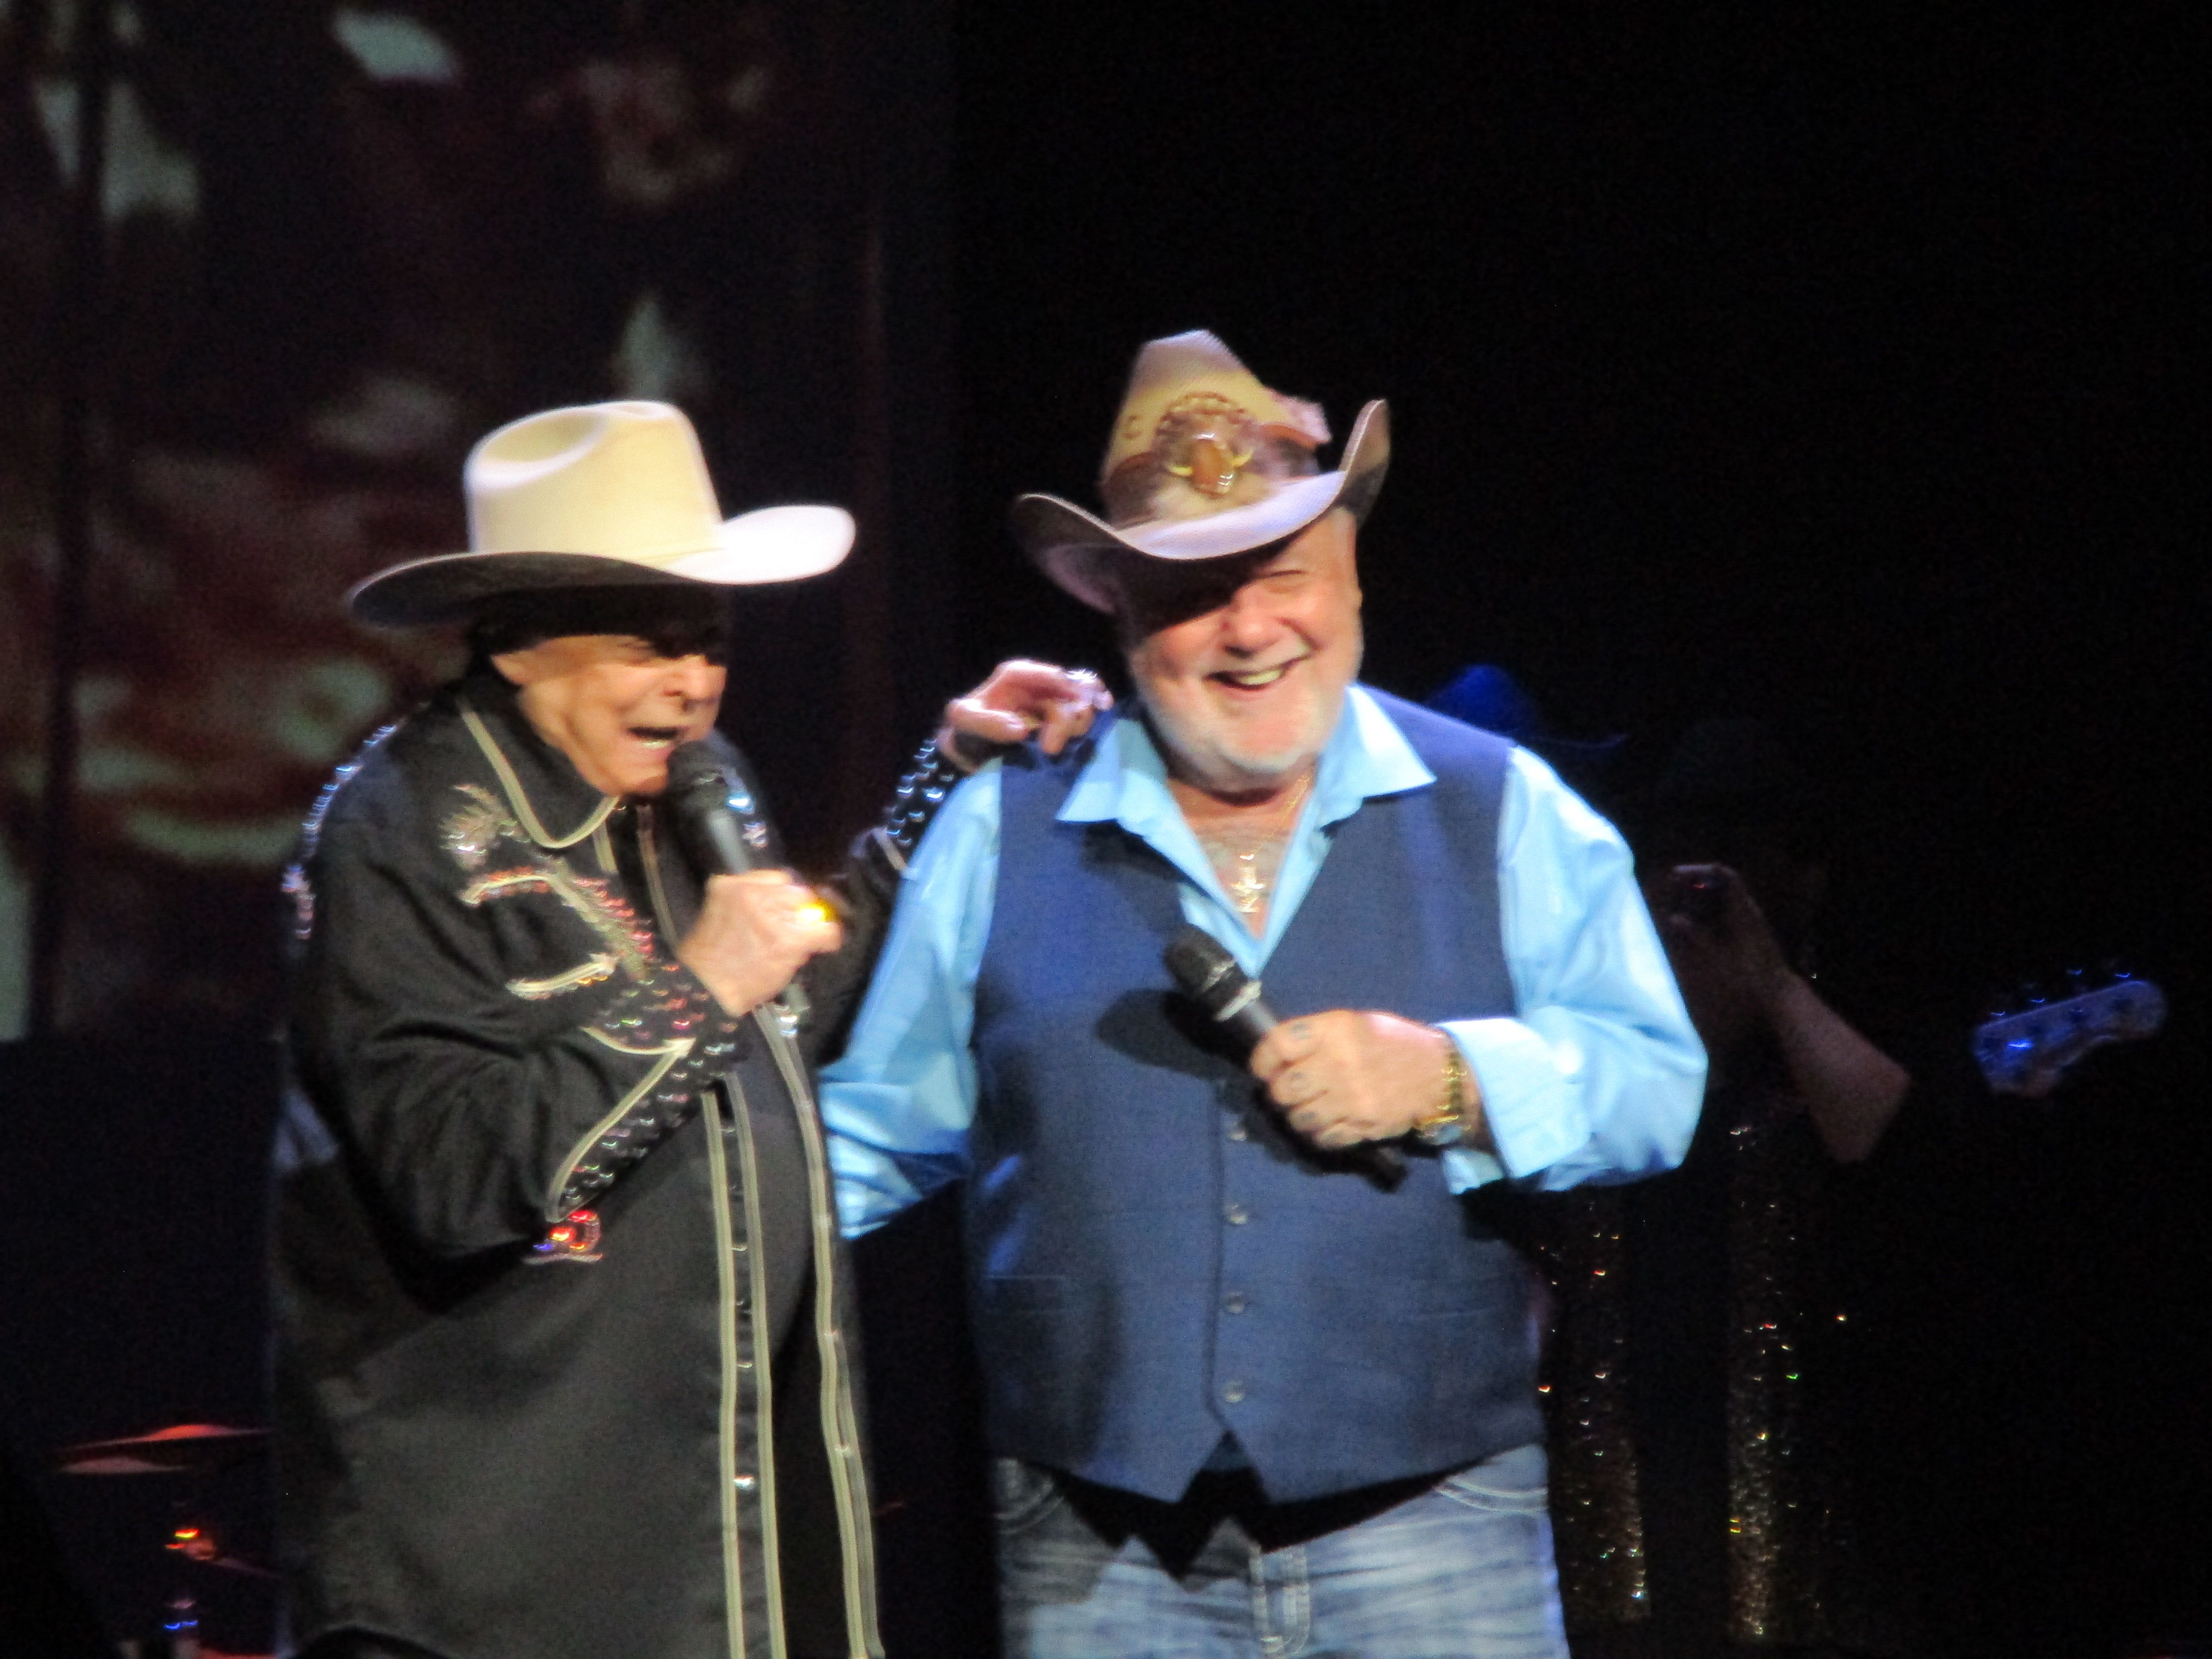 On Stage Together at the Mickey Gilley and Johnny Lee Urban Cowboy Reunion Show